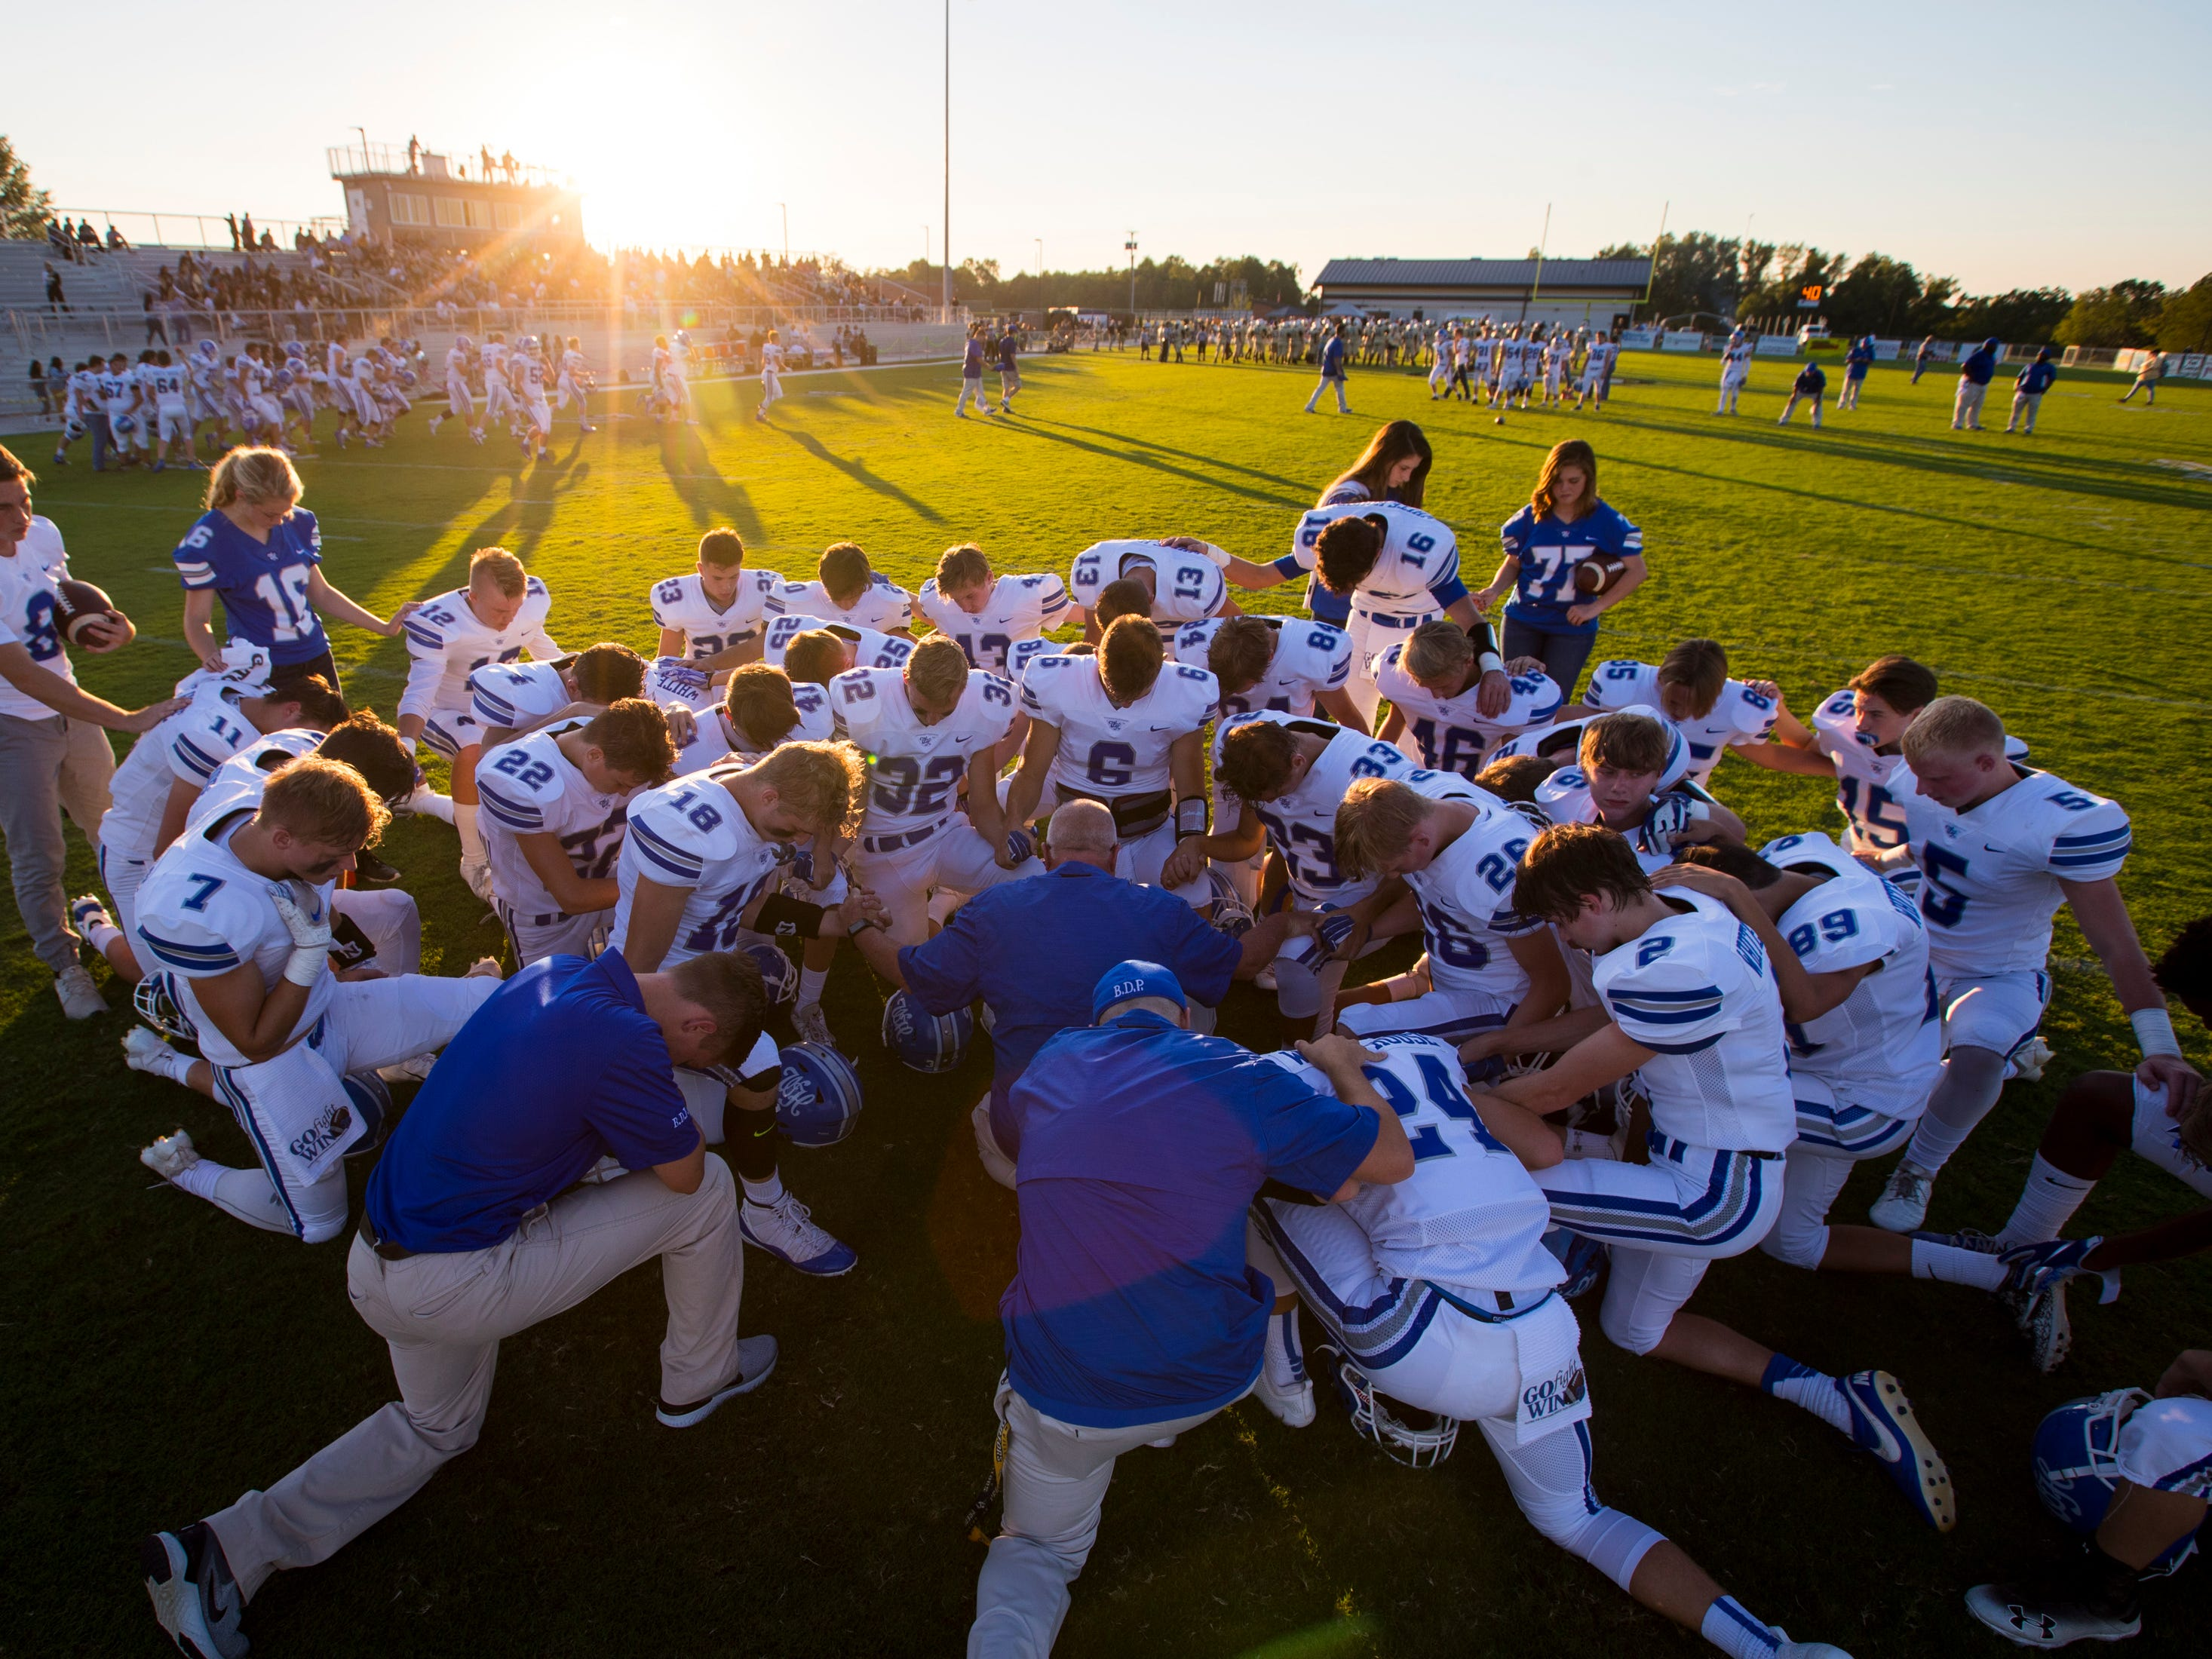 White House's players say a prayer before Springfield's game against White House at Springfield High School in Springfield on Friday, Sept. 14, 2018.